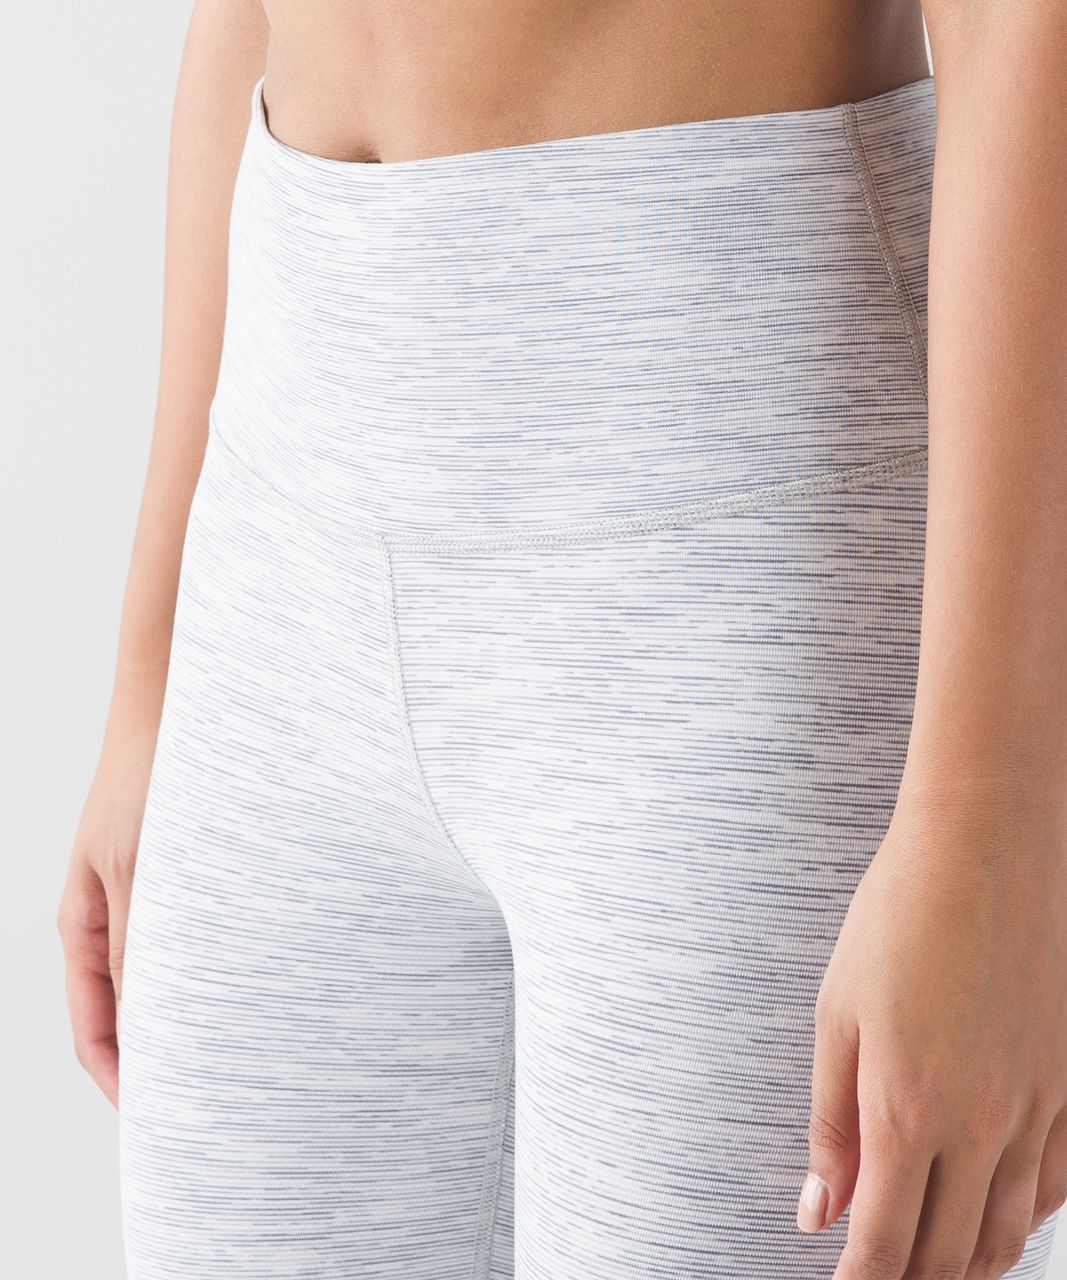 Lululemon High Times Pant - Wee Are From Space Nimbus Battleship